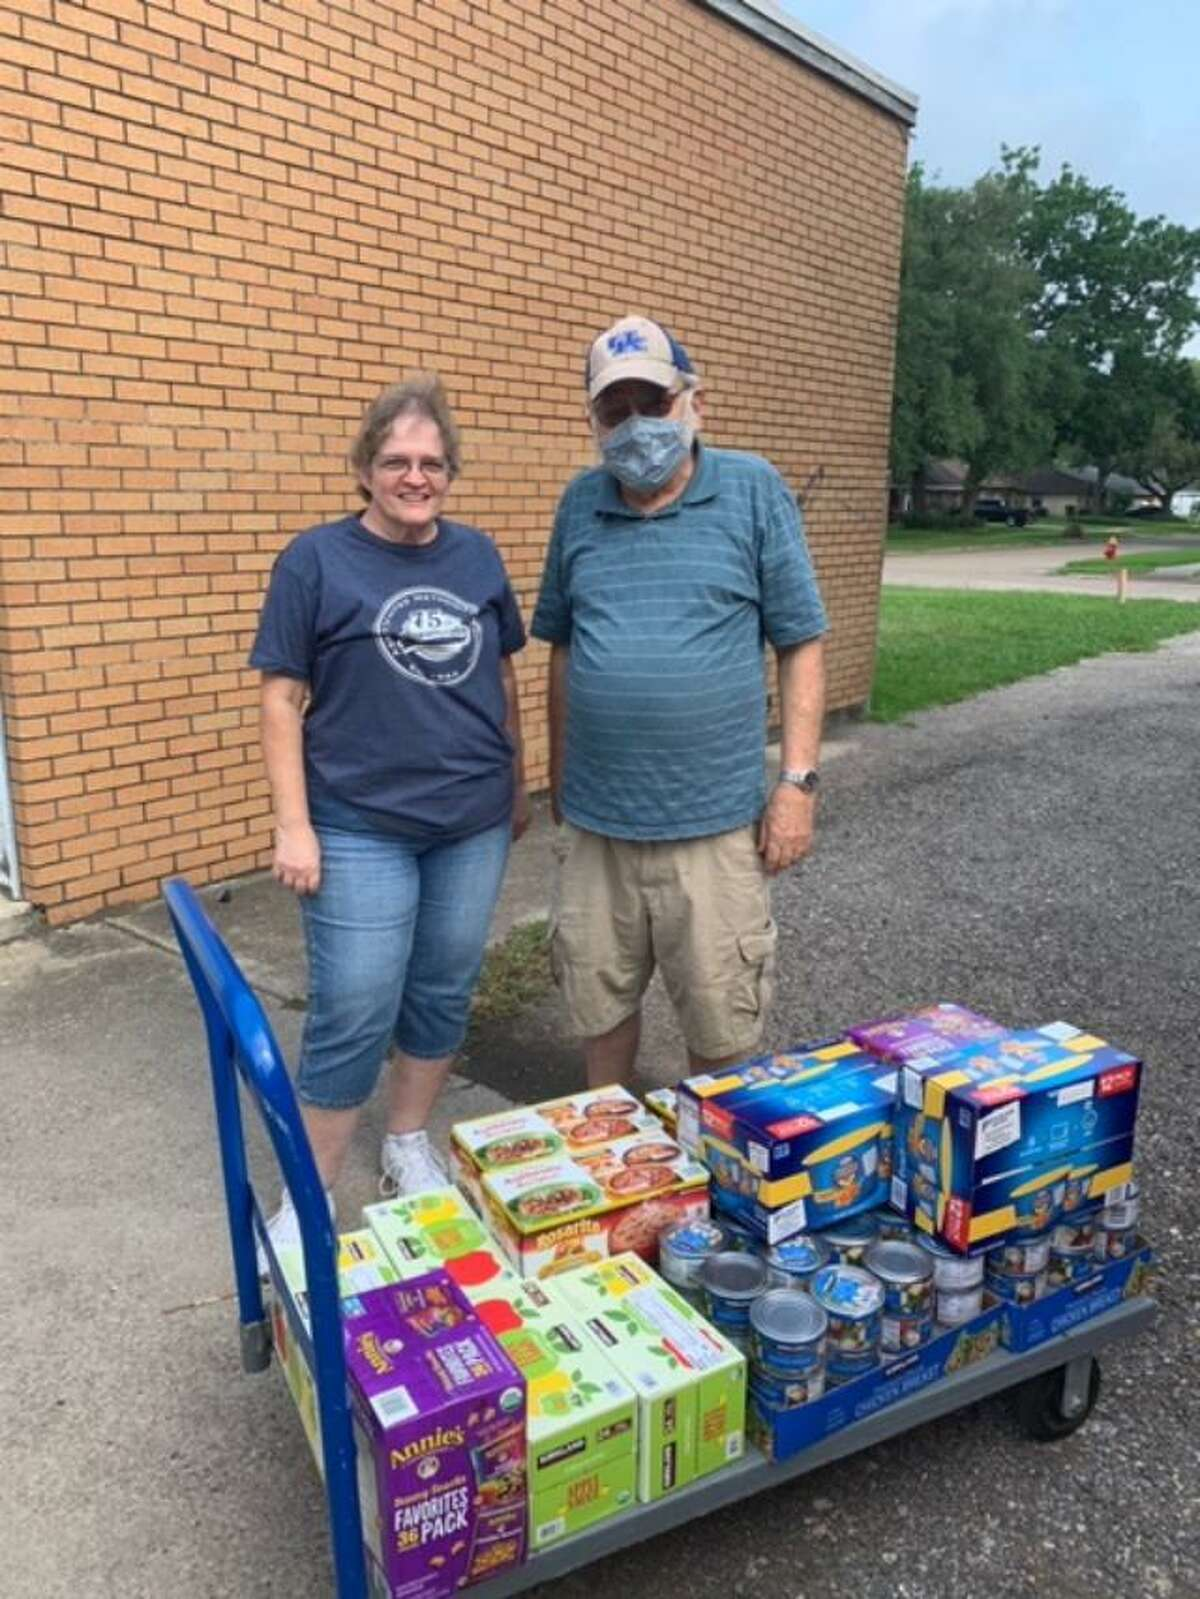 Local businesses such as Texas Oil Patch Services and NAG Clinics have donated goods to Pasadena food pantries. Representatives from Pasadena Community Ministries, shown here, received this donation.